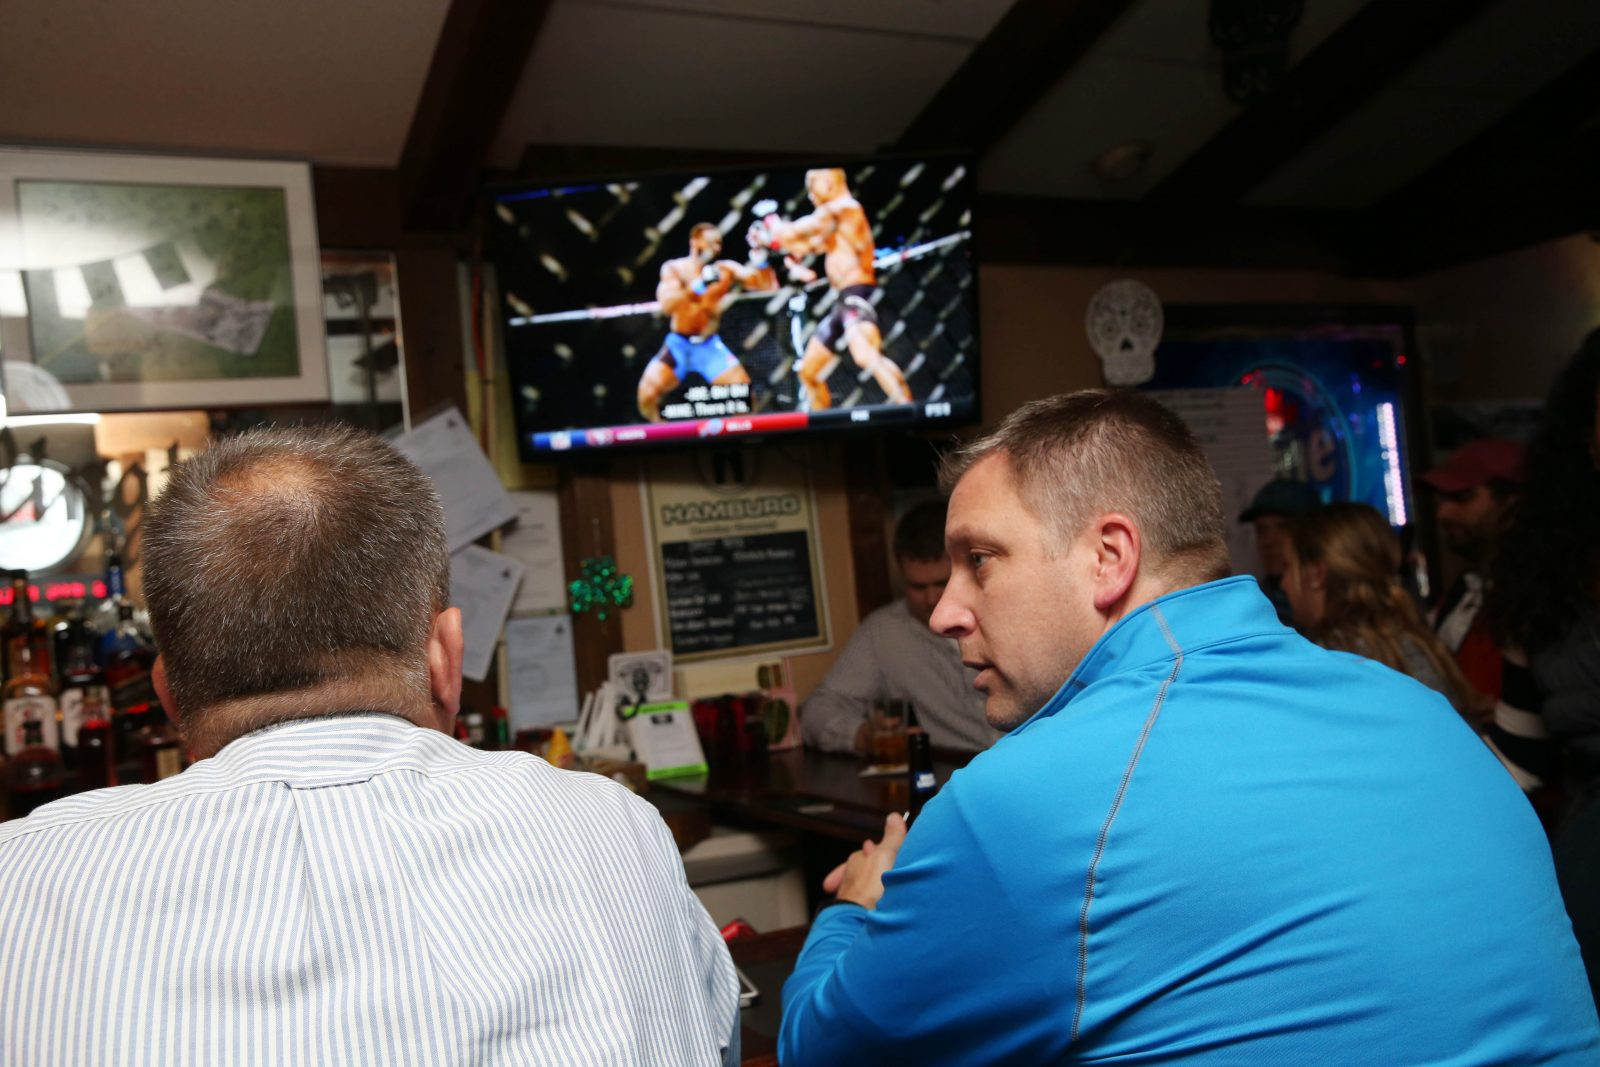 Karl Kozlowski, left, of Buffalo, and Andrew Ray, catch a boxing match on TV at the Wellington Pub.    (Sharon Cantillon/Buffalo News)